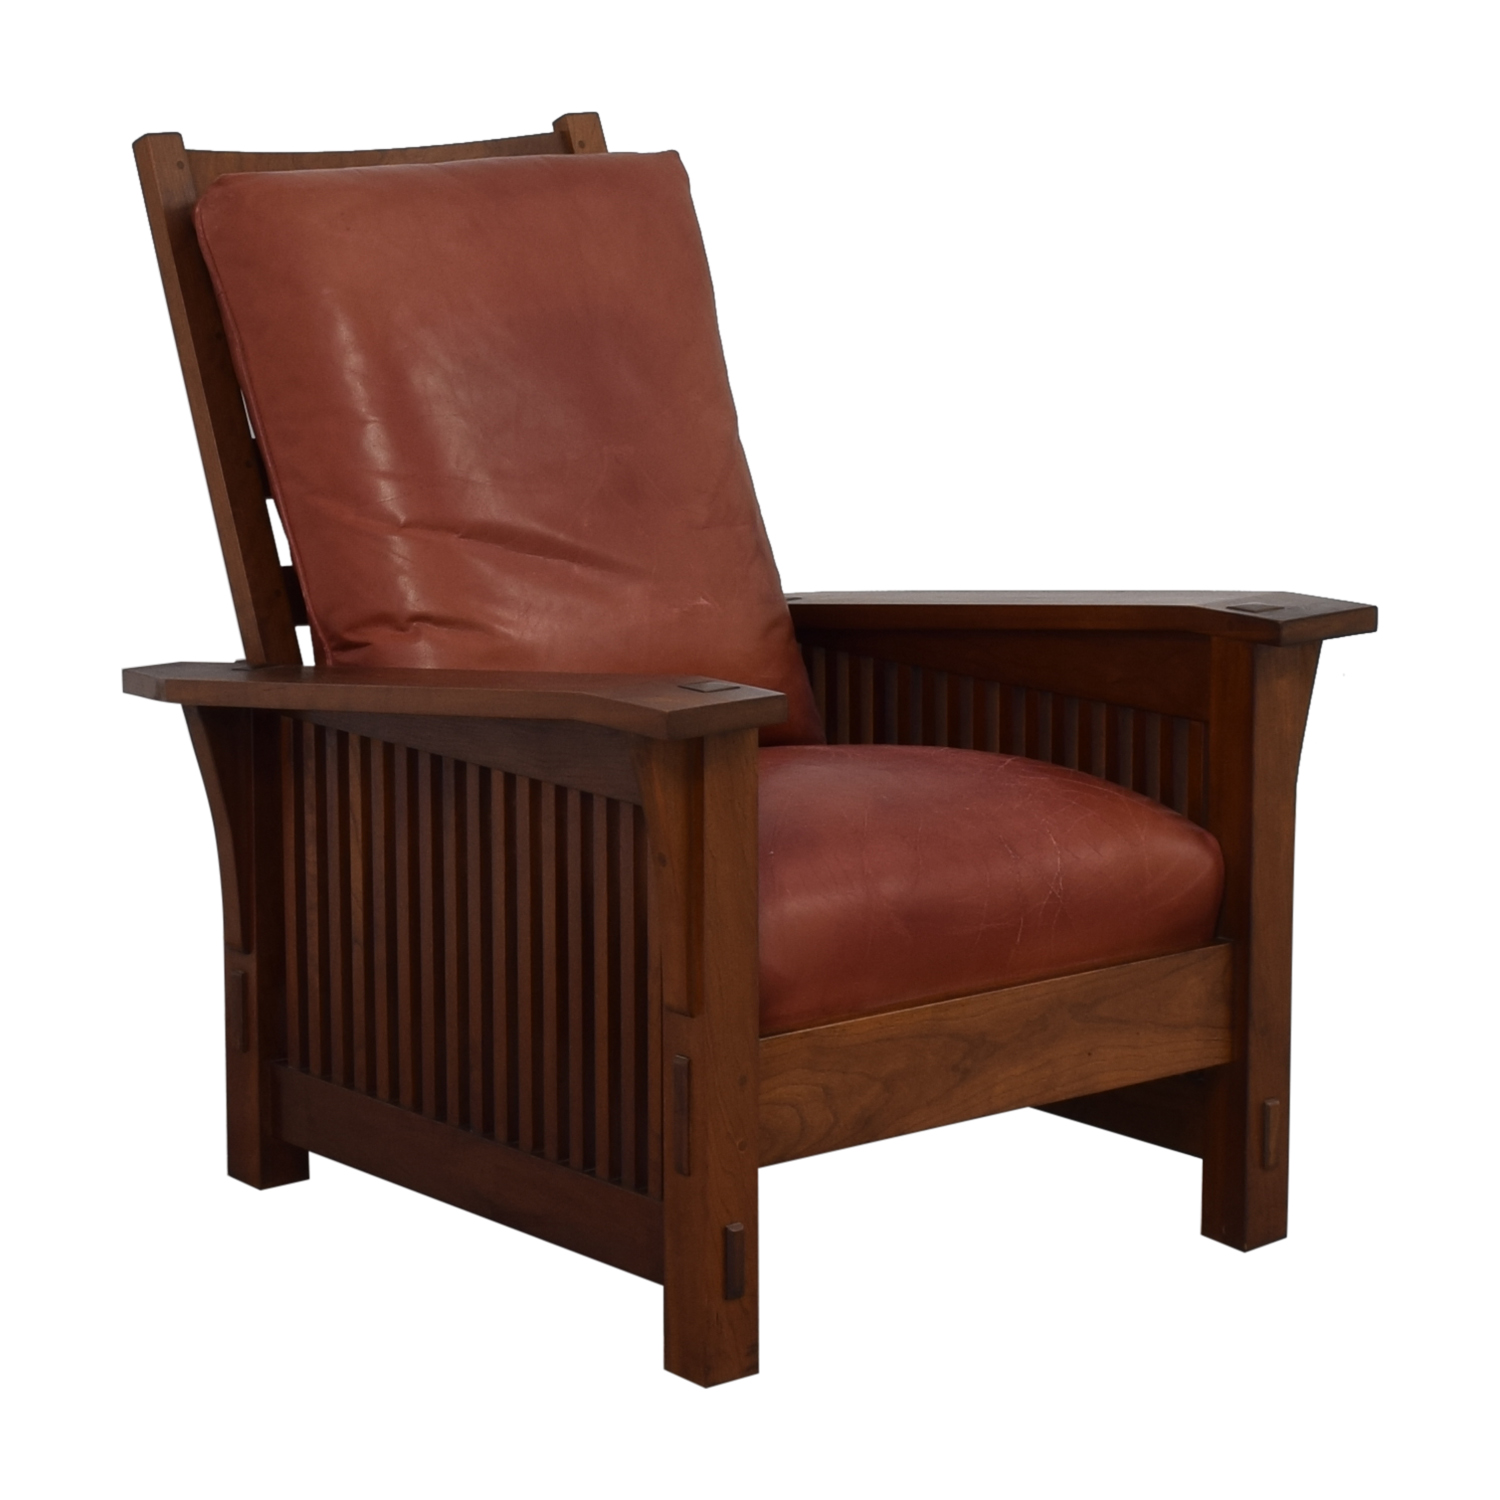 Stickley Furniture Stickley Spindle Morris Chair nyc